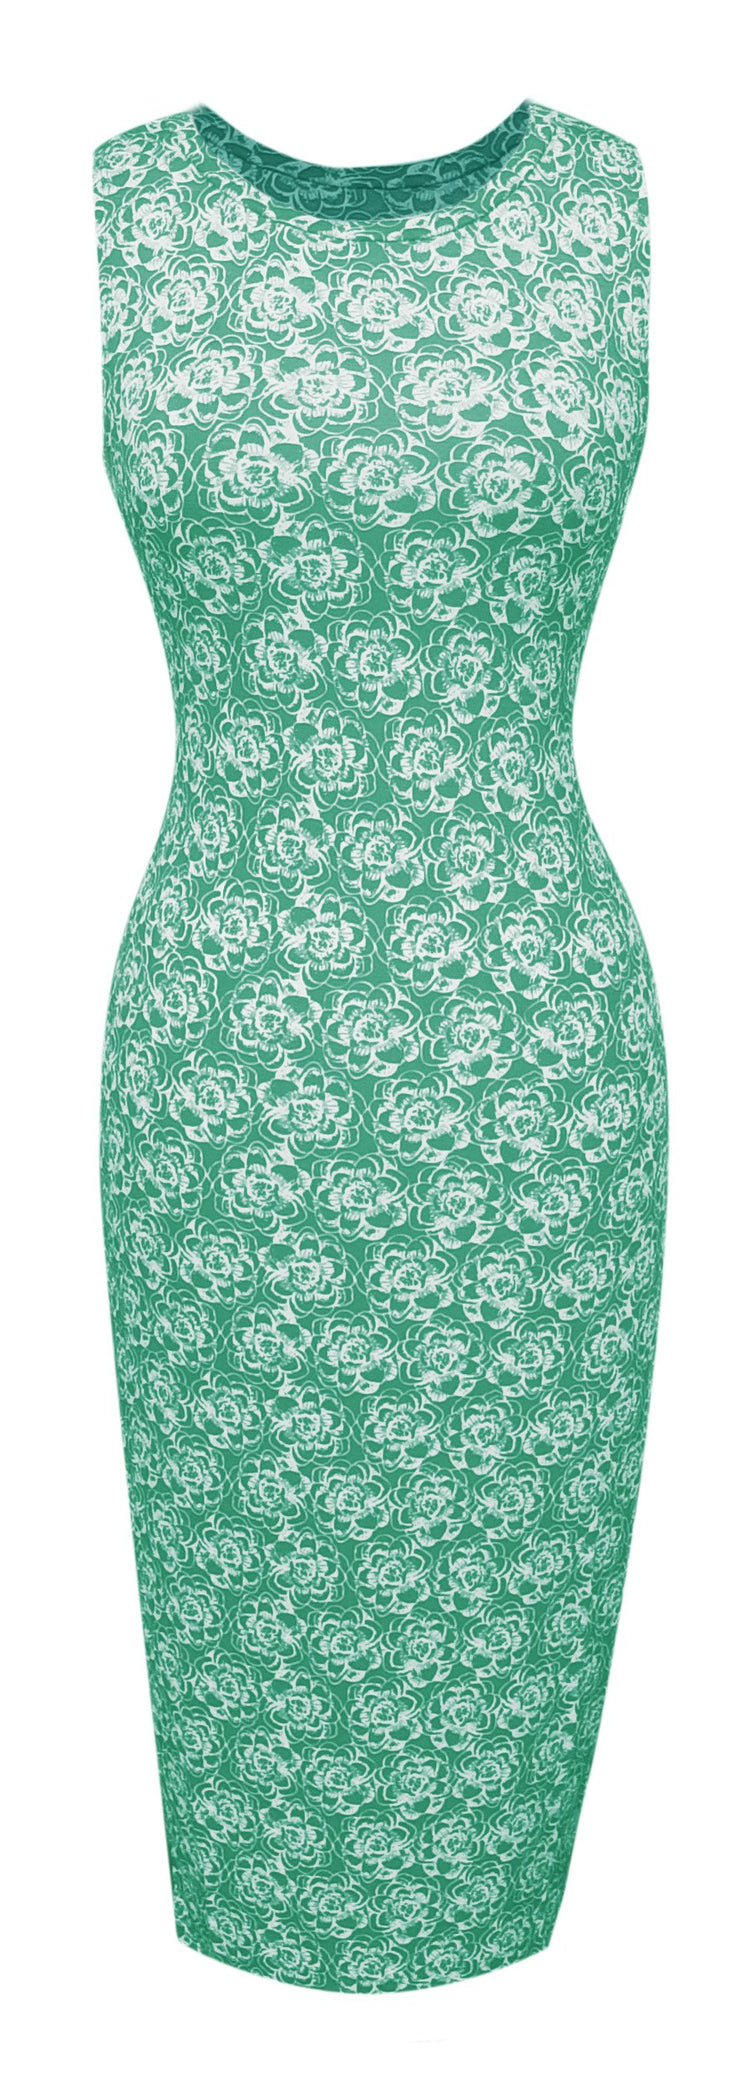 A1595-Floral-BodyconDress-Mint-Med-JG